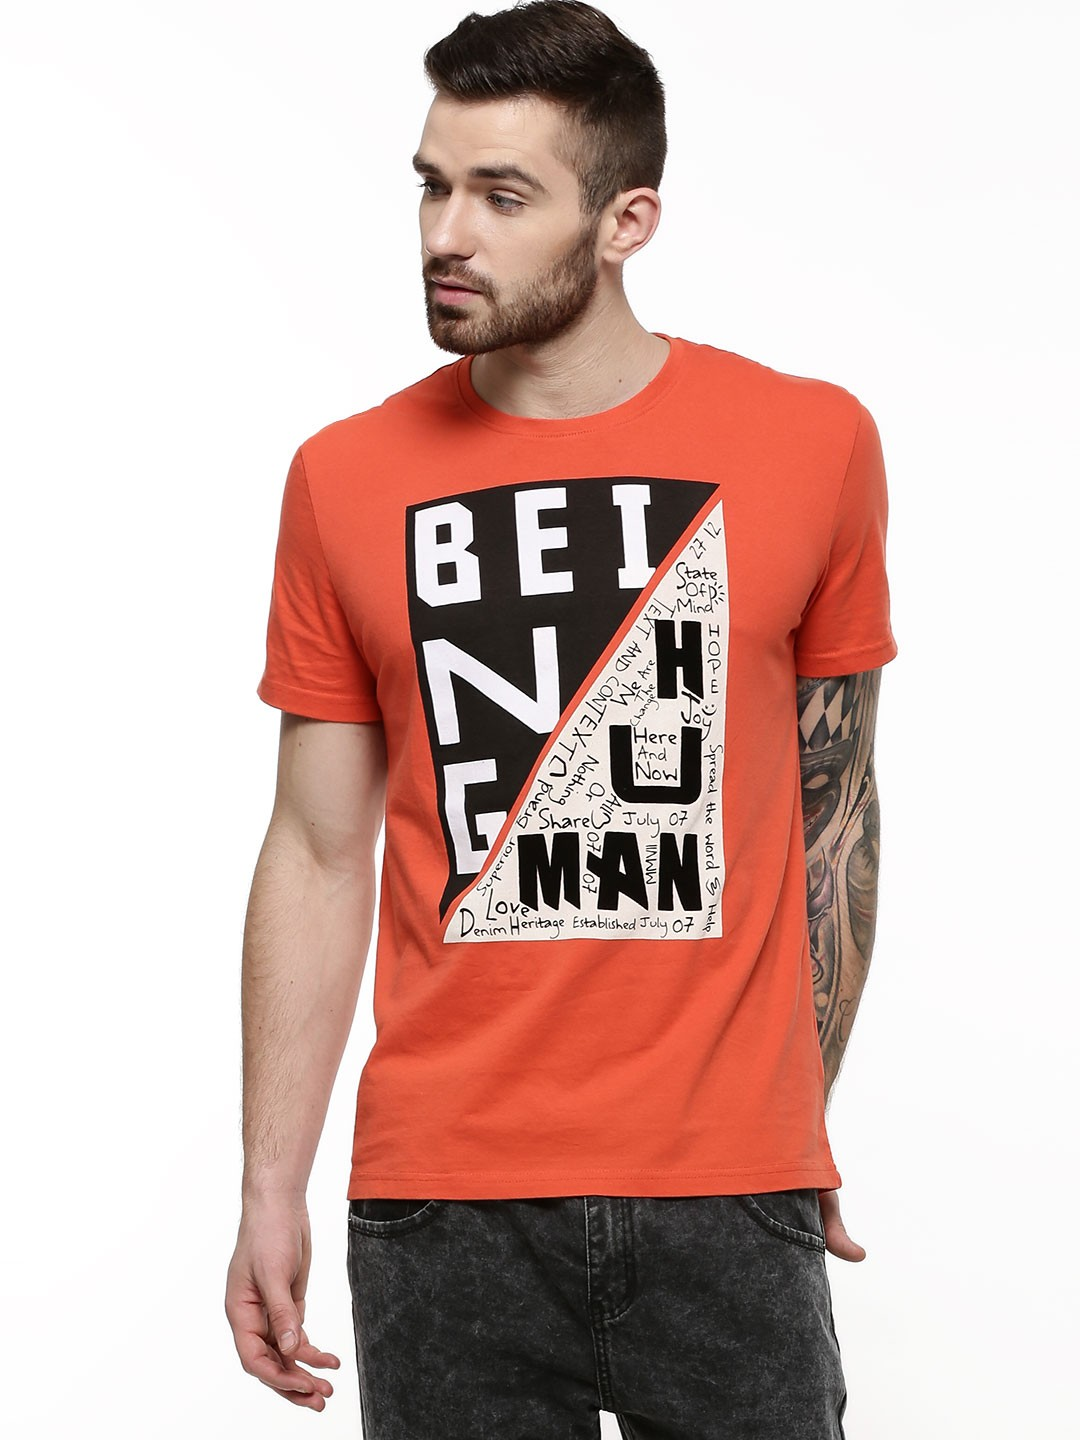 Buy being human printed front t shirt for men men 39 s for Being human t shirts buy online india